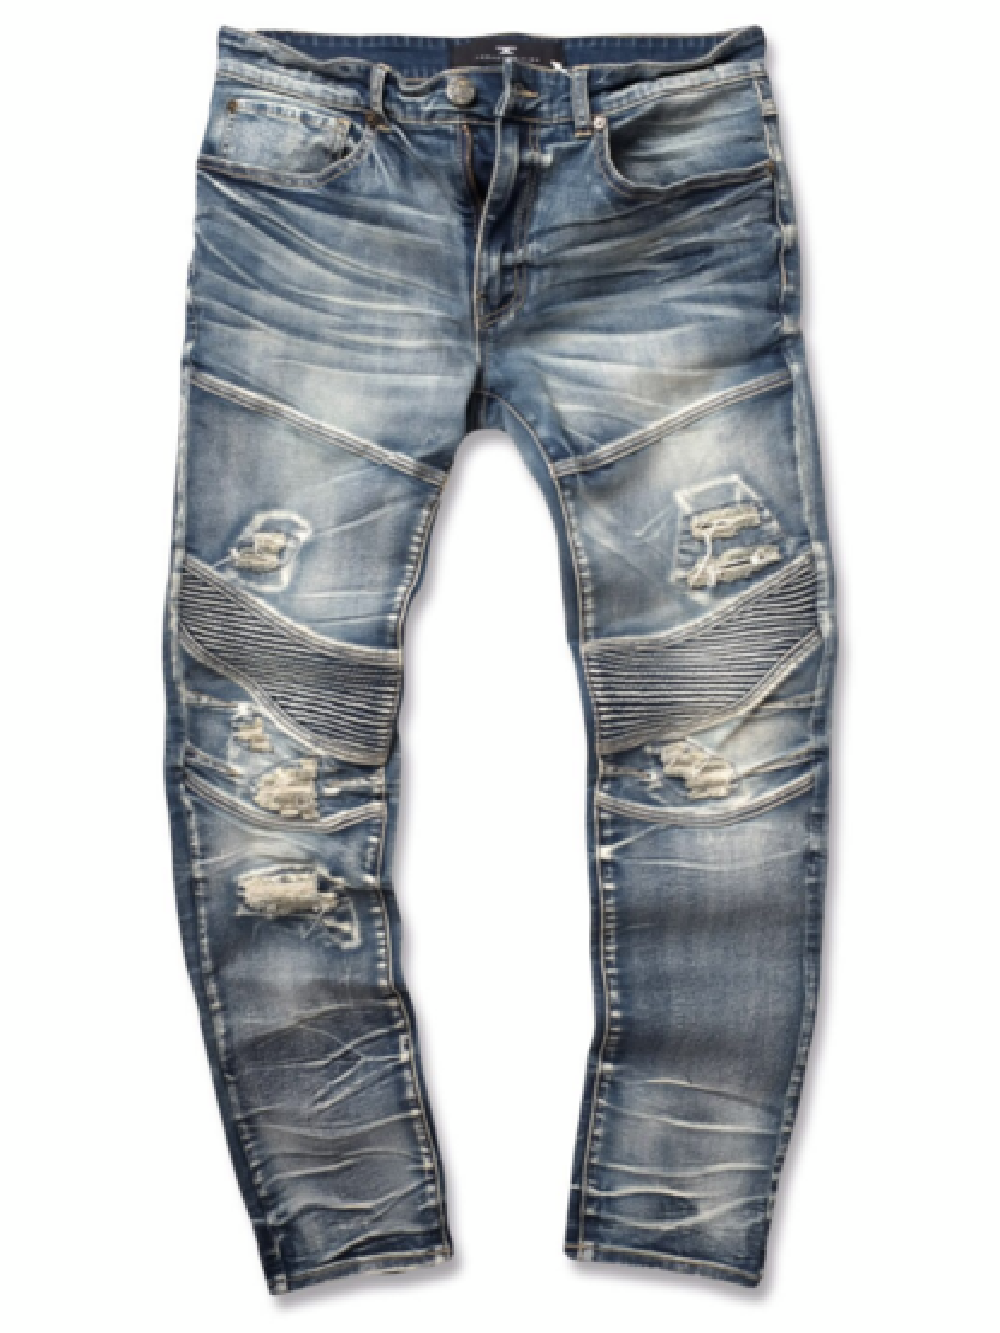 JORDAN CRAIG OUTLAW MOTO DENIM - STUDIO BLUE